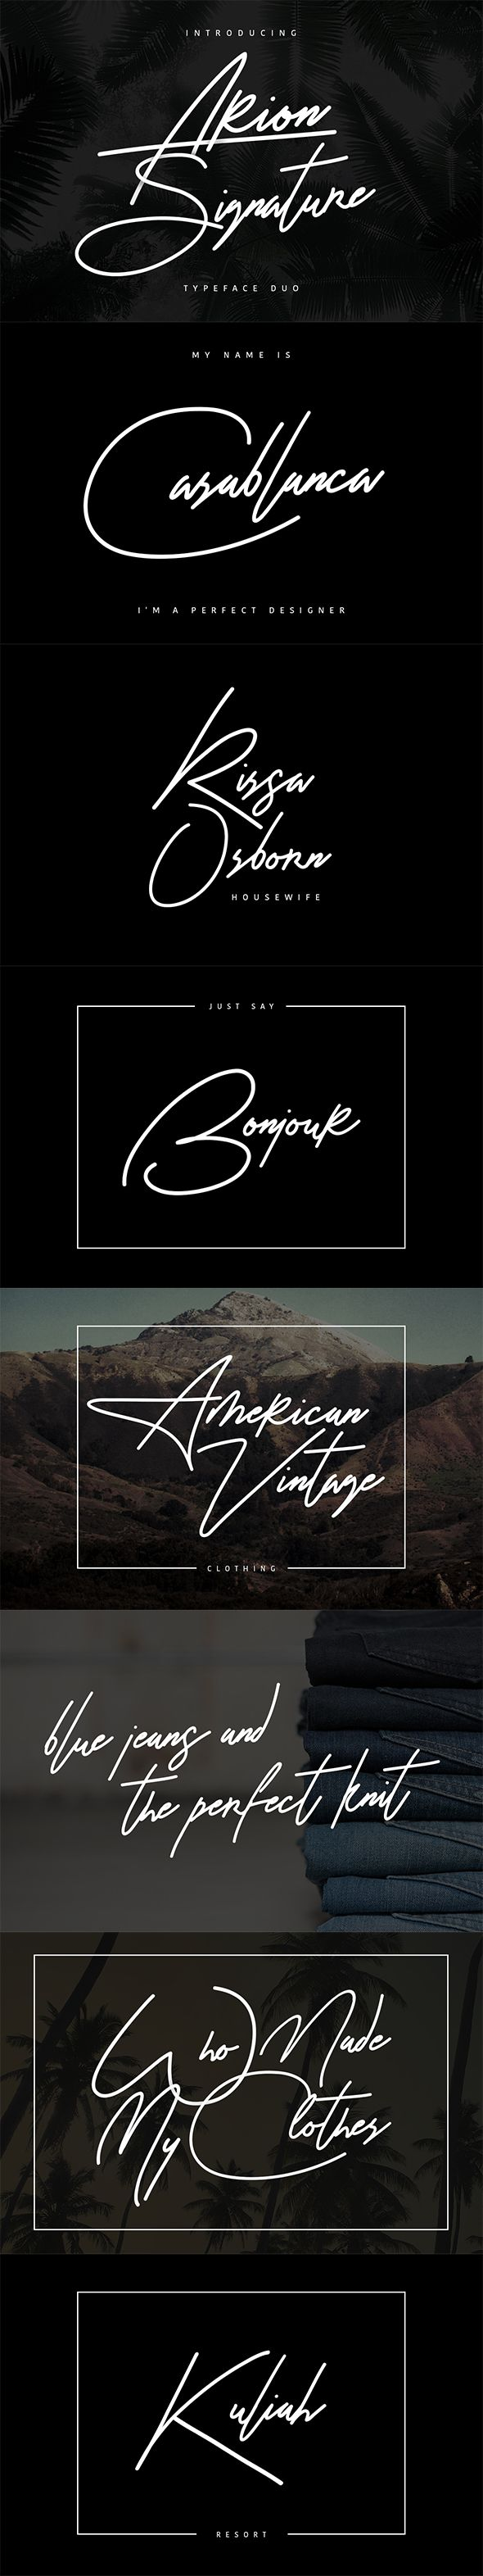 Arion Signature Typeface - Calligraphy Script Download here: https://graphicriver.net/item/arion-signature-typeface/19538564?ref=alena994